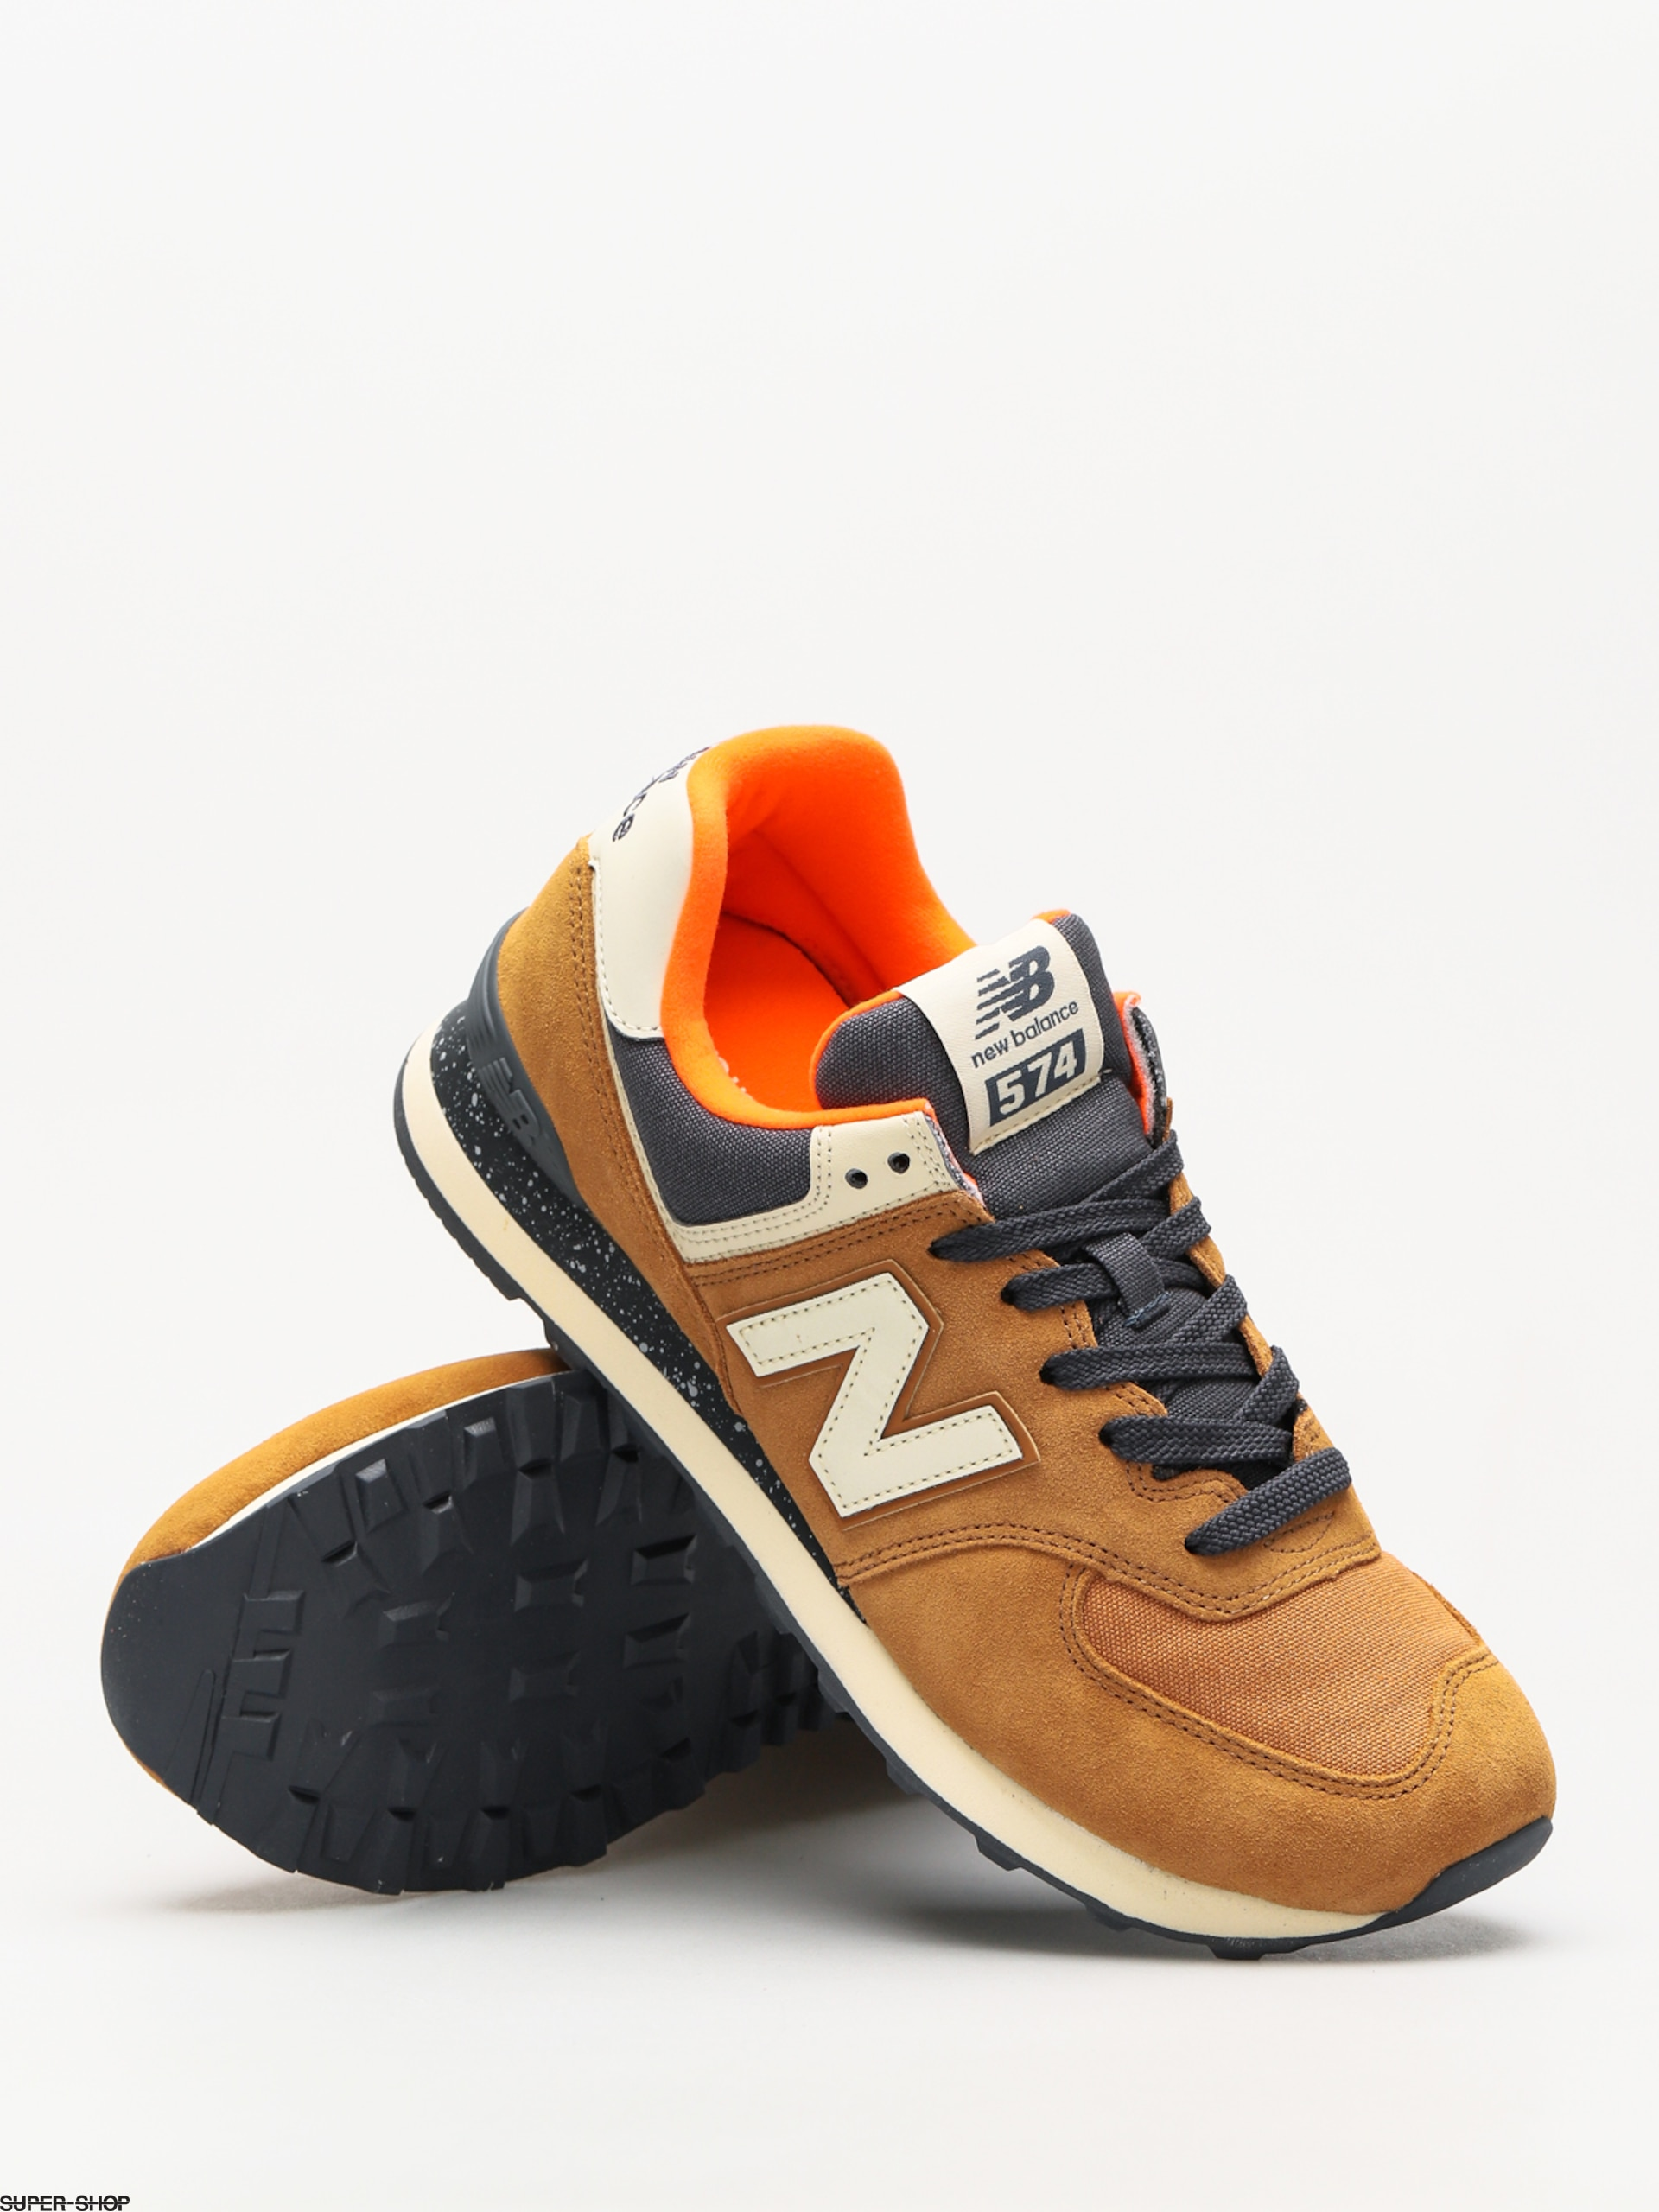 0944176f59 sale new balance shoes 574 brown sugar d34ec 9503d